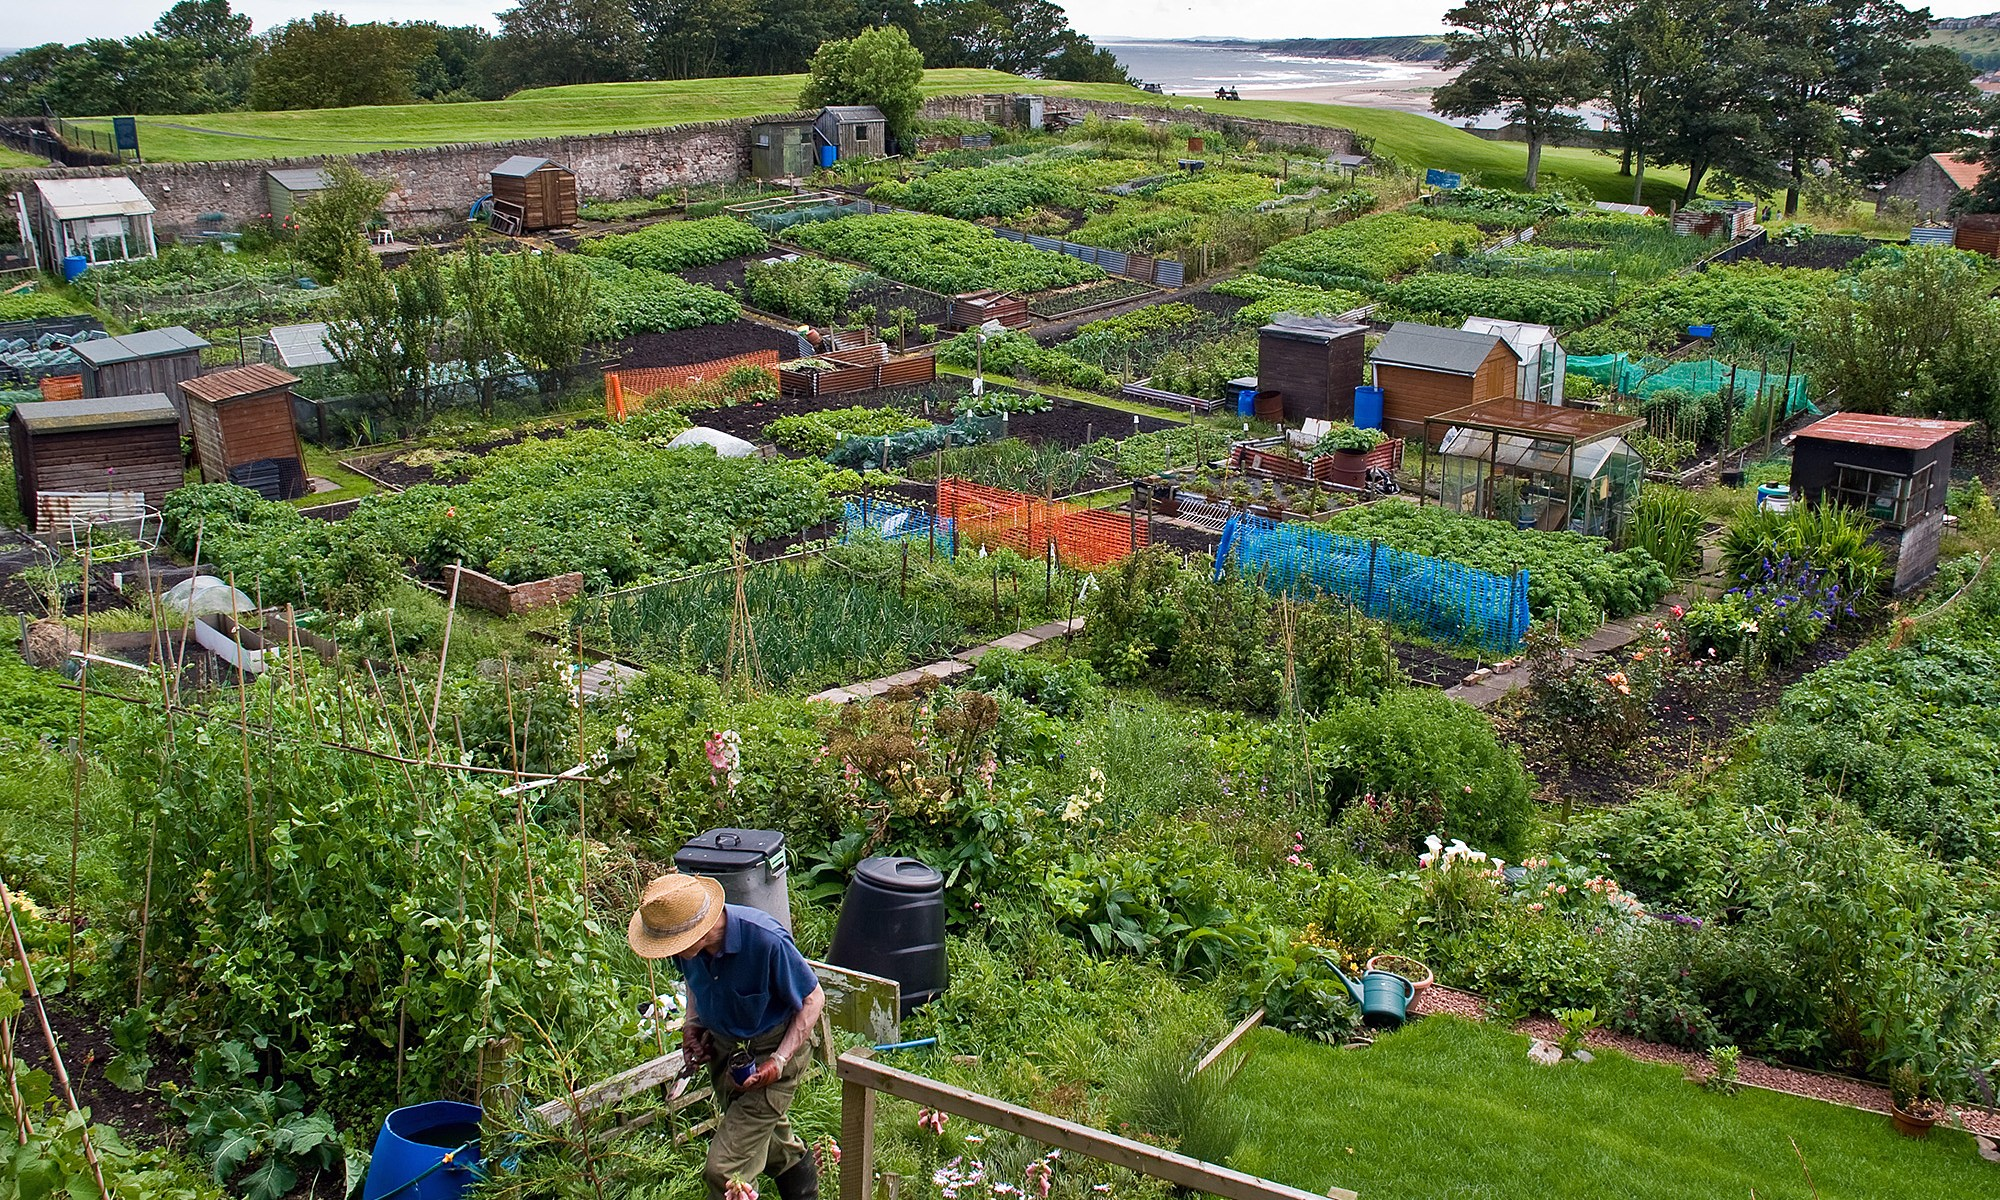 Allotments in Berwick-upon-Tweed